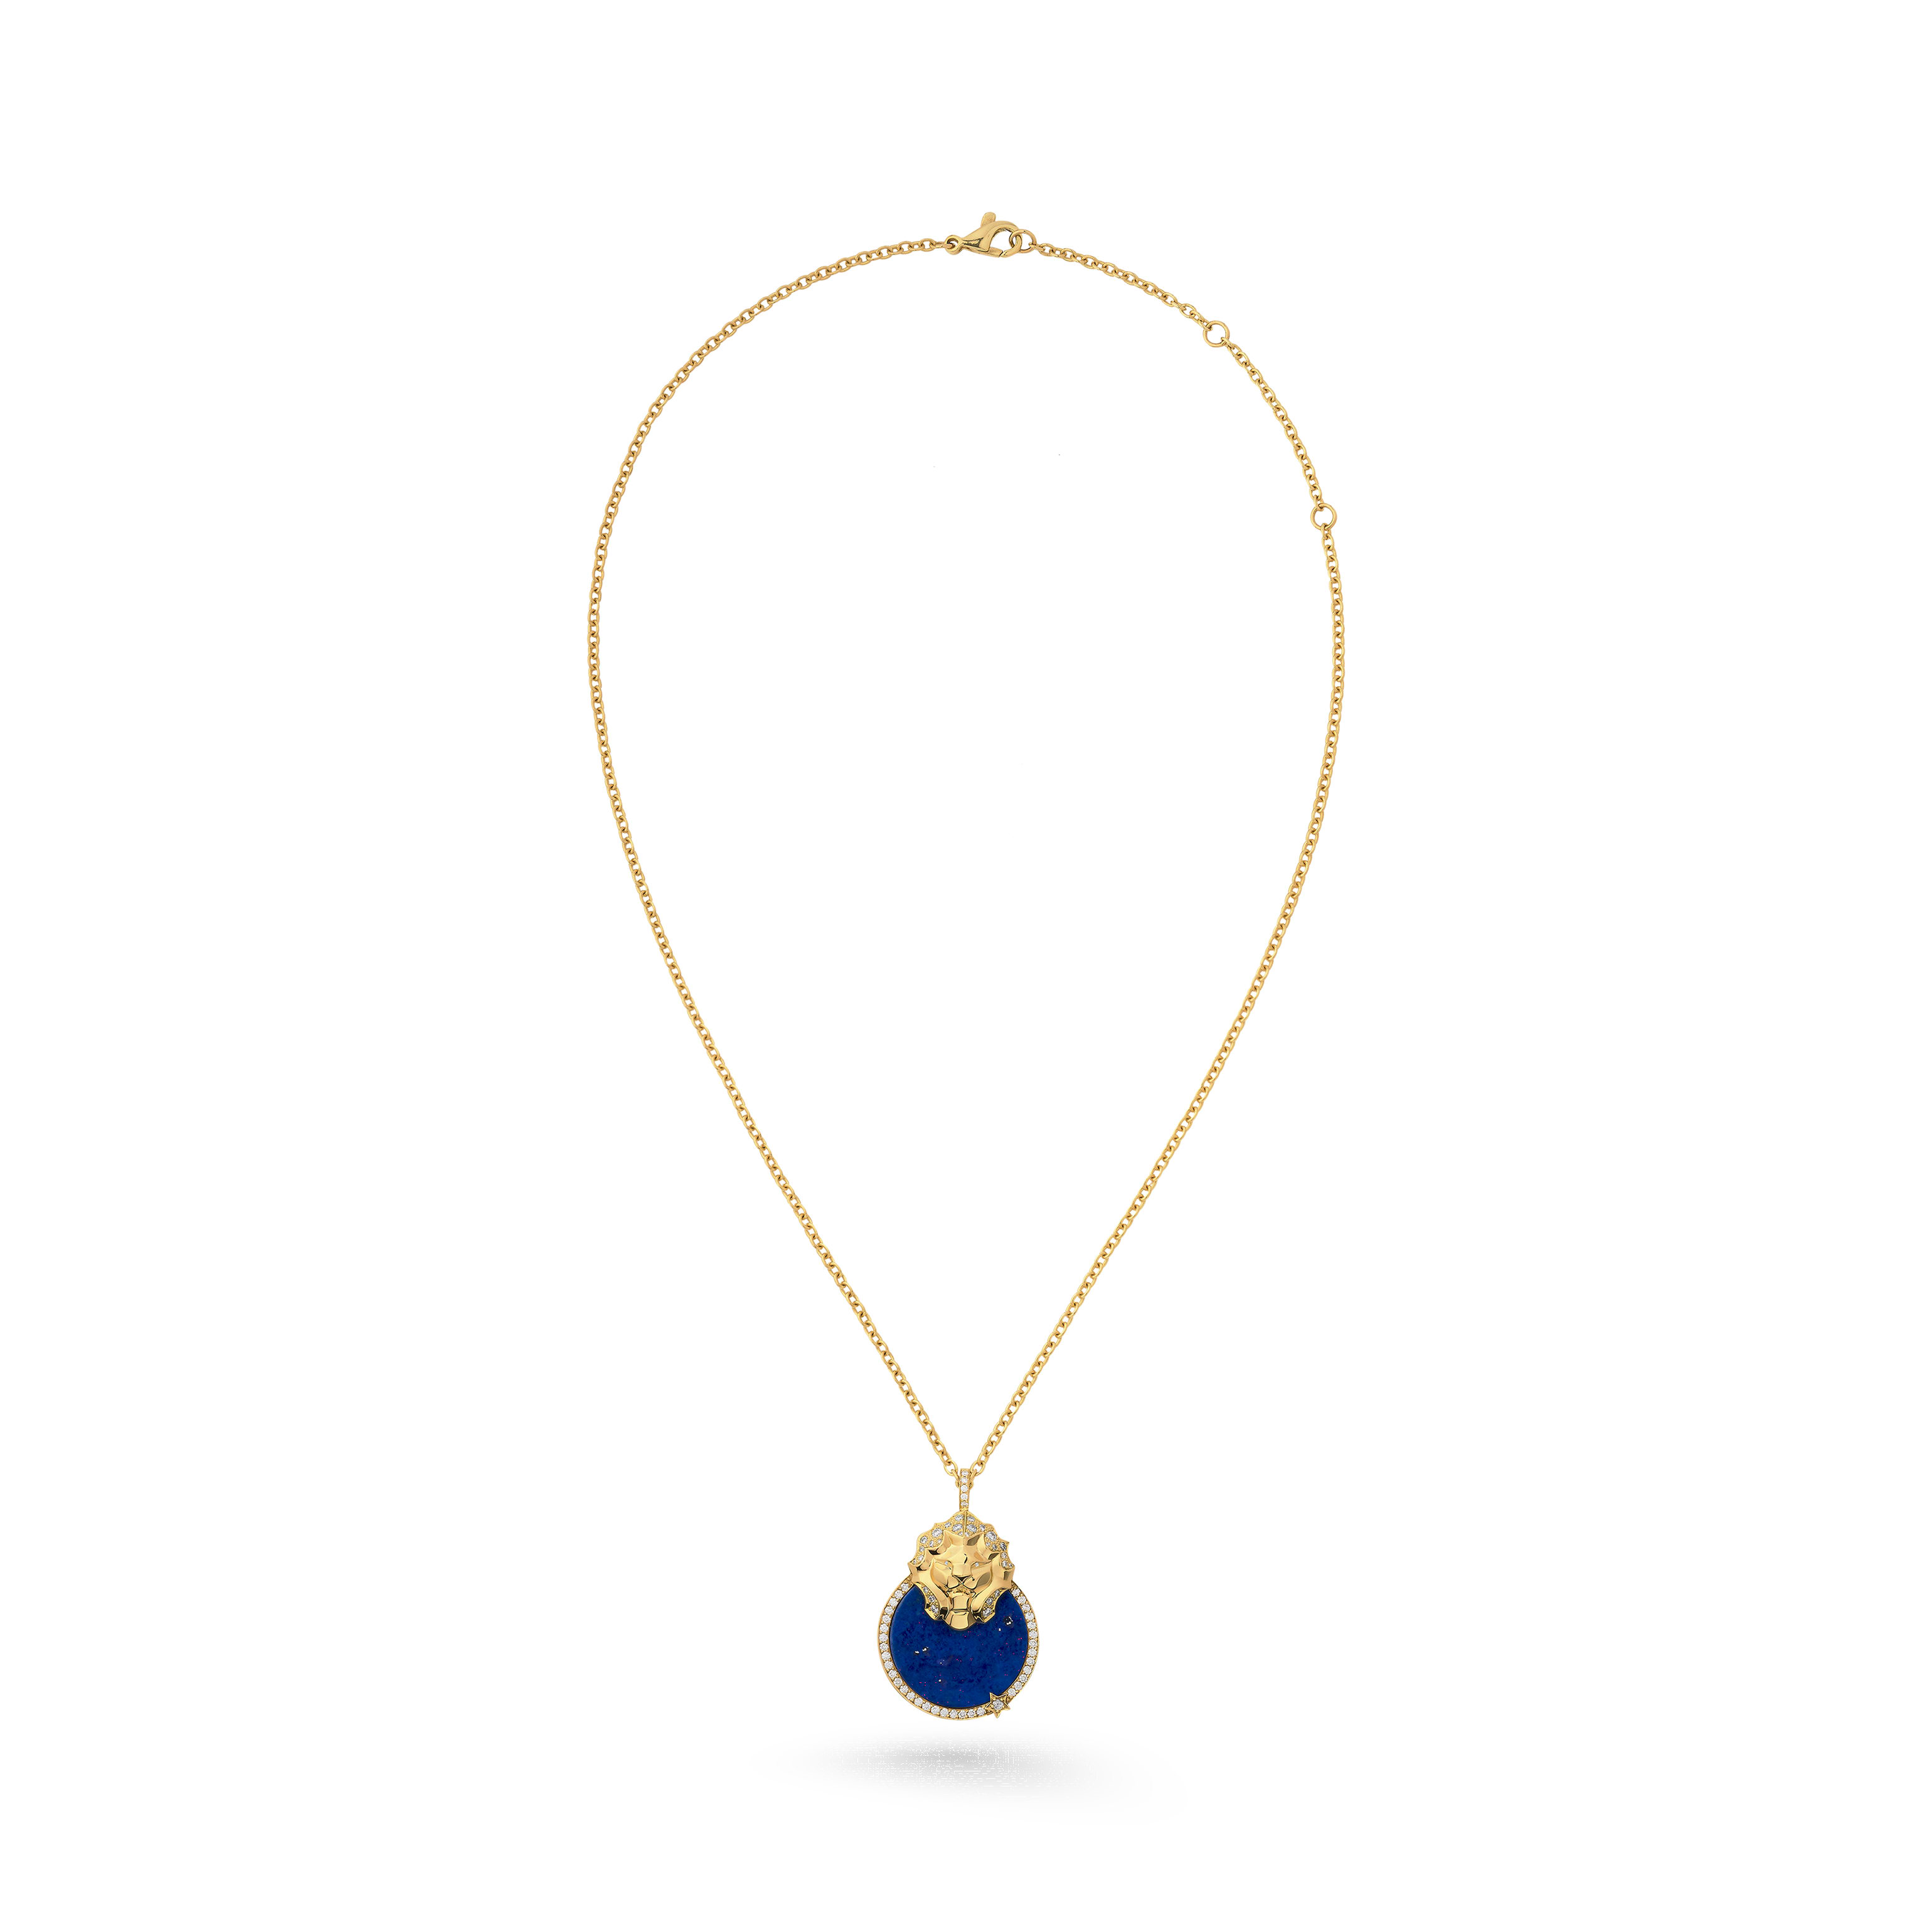 Lion Médaille necklace - 18K yellow gold, diamonds, lapis lazuli - CHANEL - Default view - see standard sized version